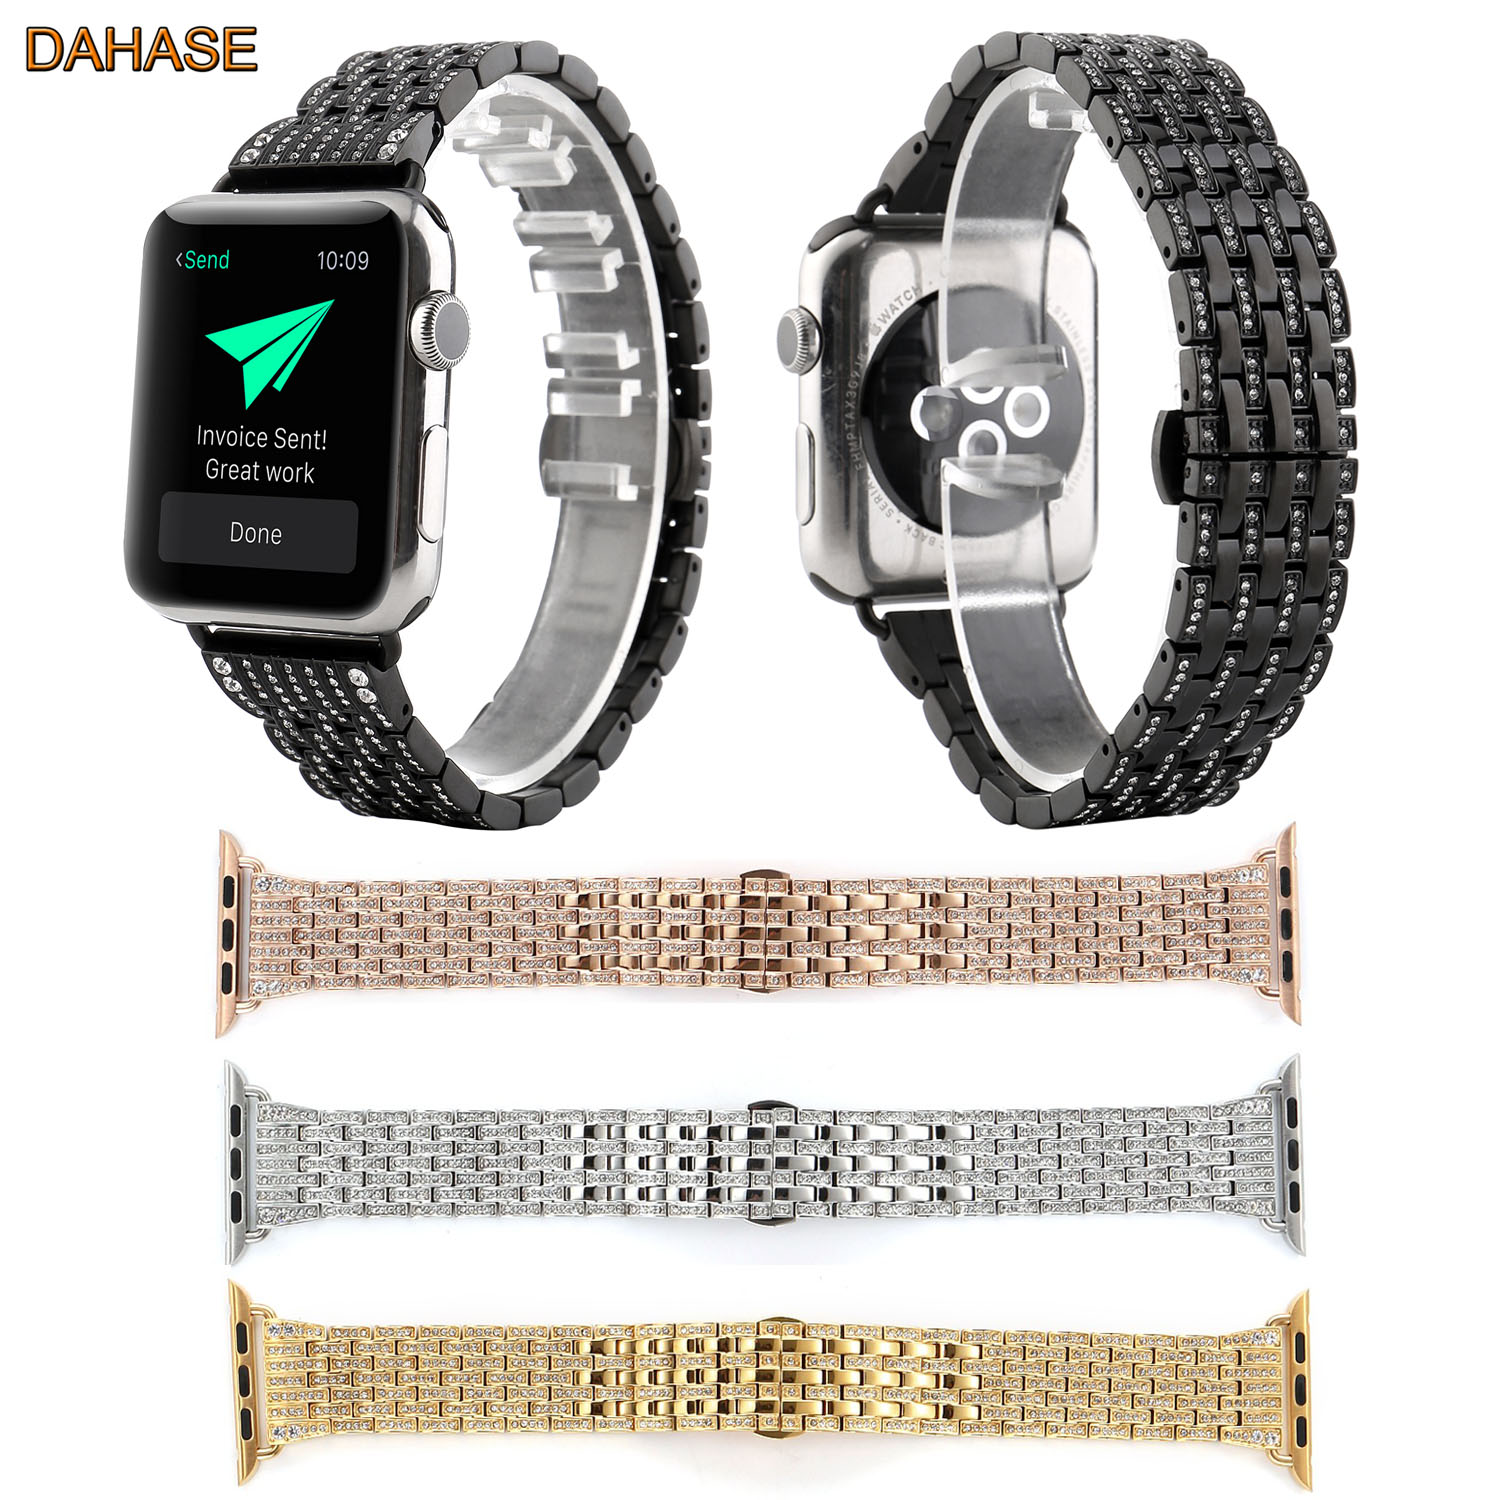 DAHASE Bling Crystal Stainless Steel Watchband for iWatch Strap Diamond Rhinestone Band for Apple Watch Series 1/2/3 Wristband<br>